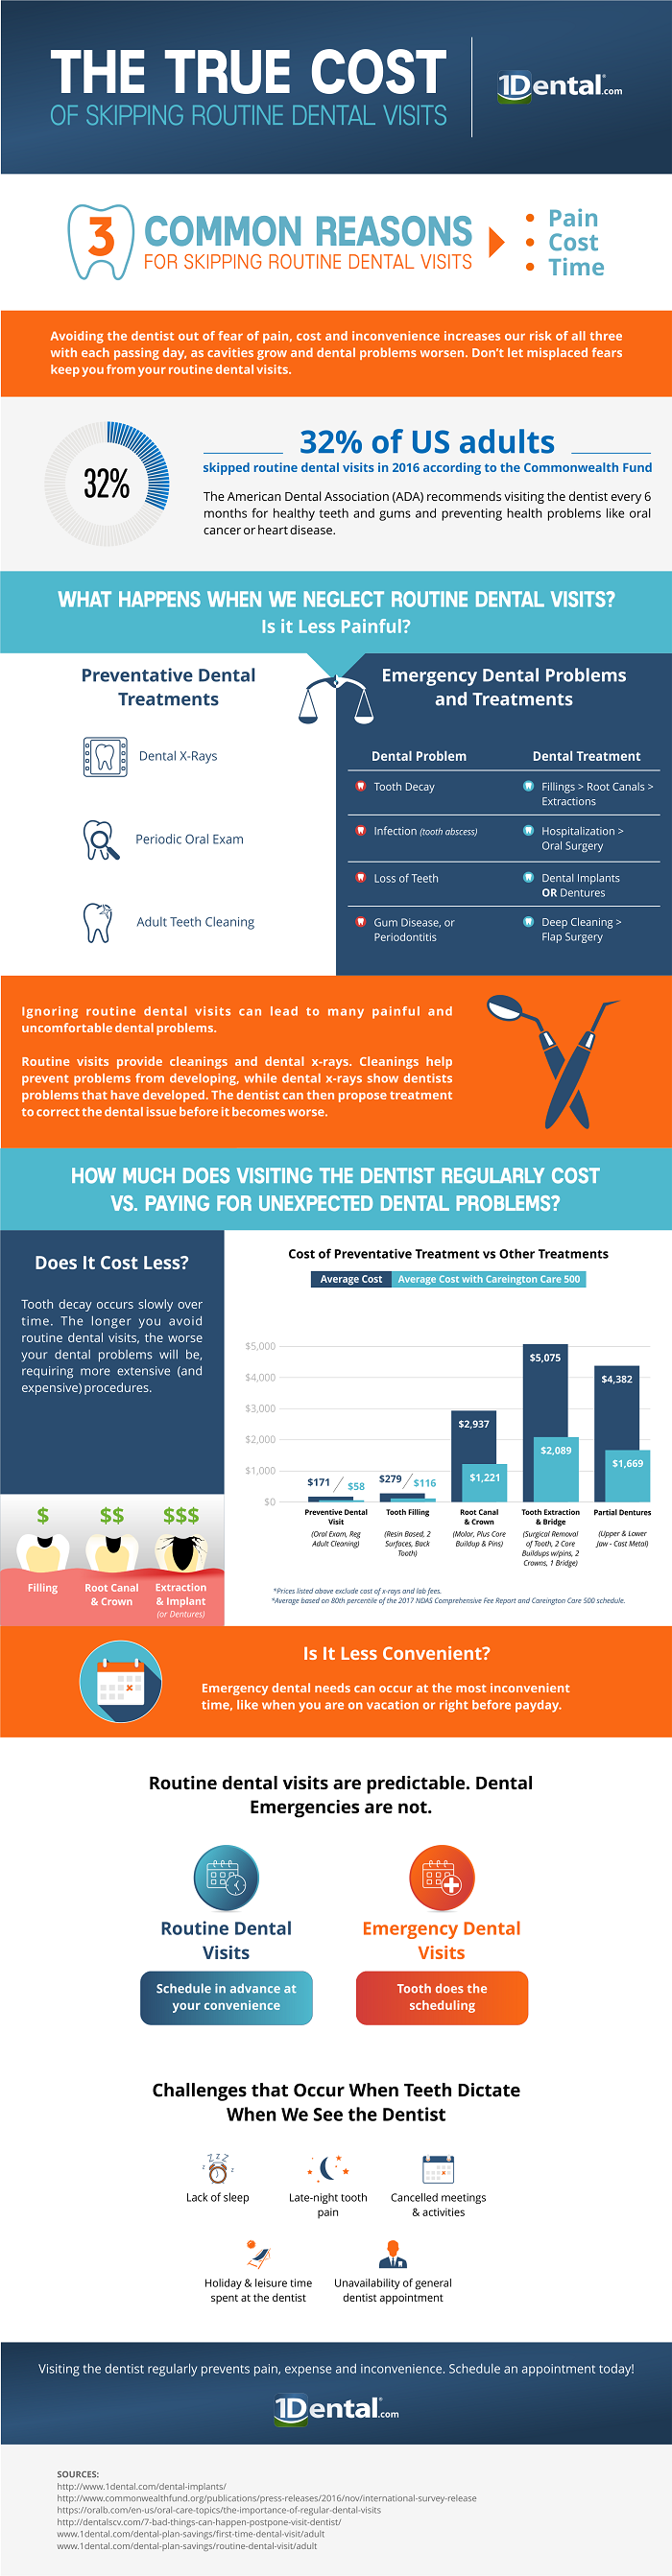 3 Common Reasons We Avoid Routine Dental Visits Infographic